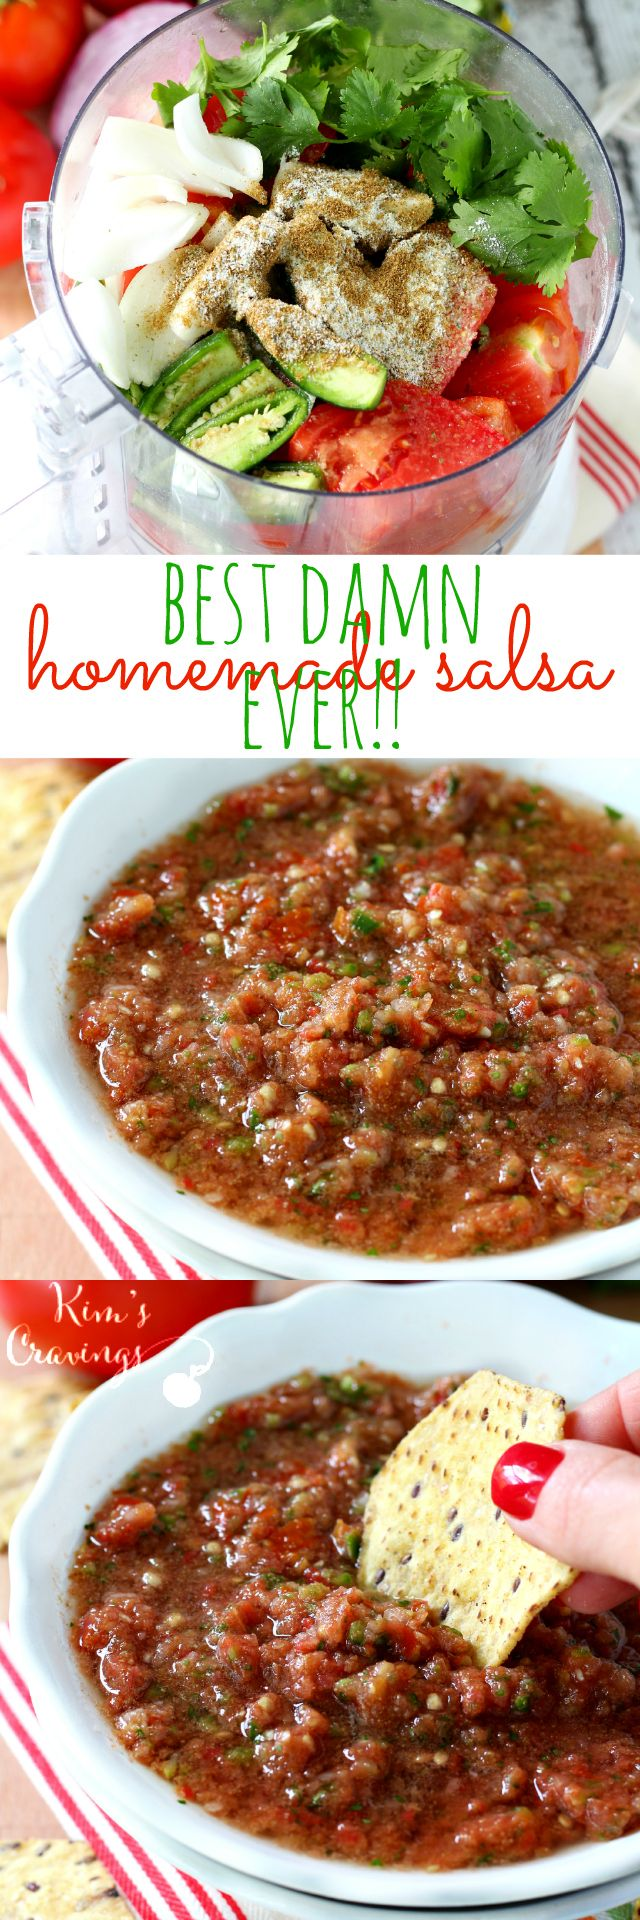 Best damn salsa ever recipe salsa bright and food items the best damn salsa ever is bright fresh and absolutely irresistible loaded with delicious forumfinder Choice Image